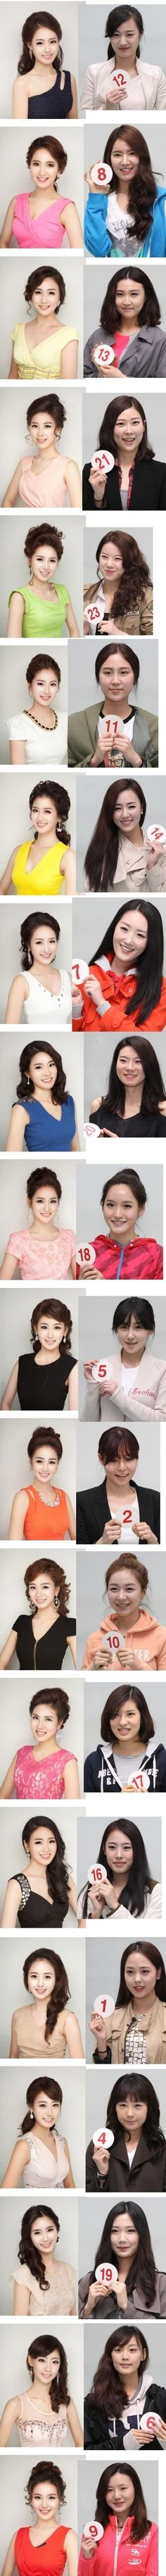 Miss Korea 2013 contestants before and after